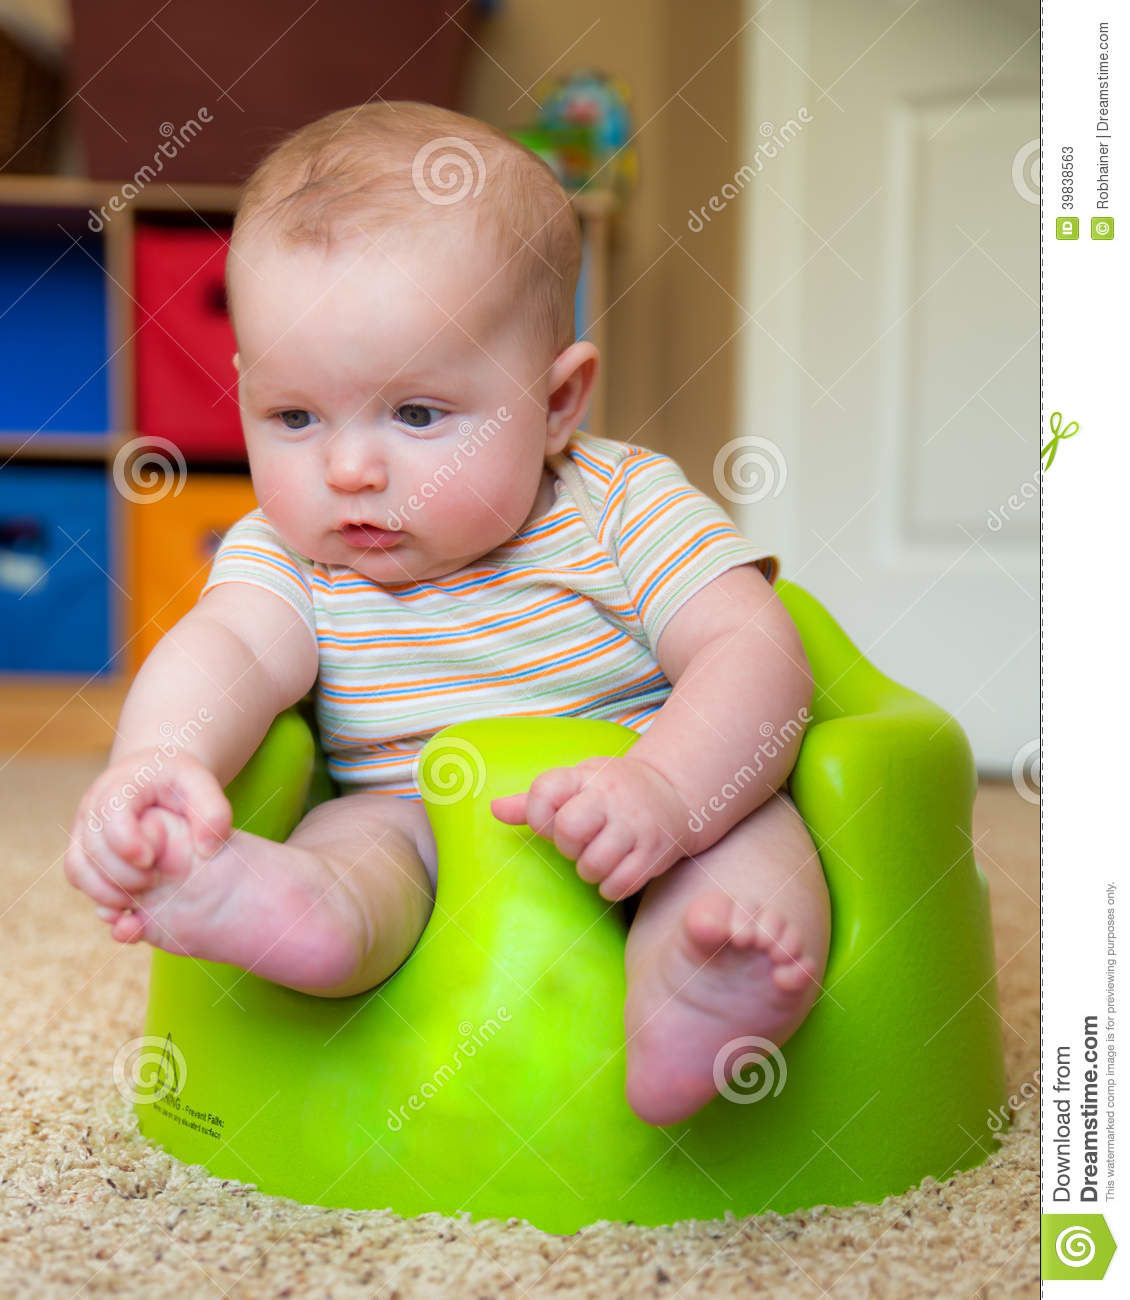 Baby Using Training Bumbo Seat To Sit Up Stock Image